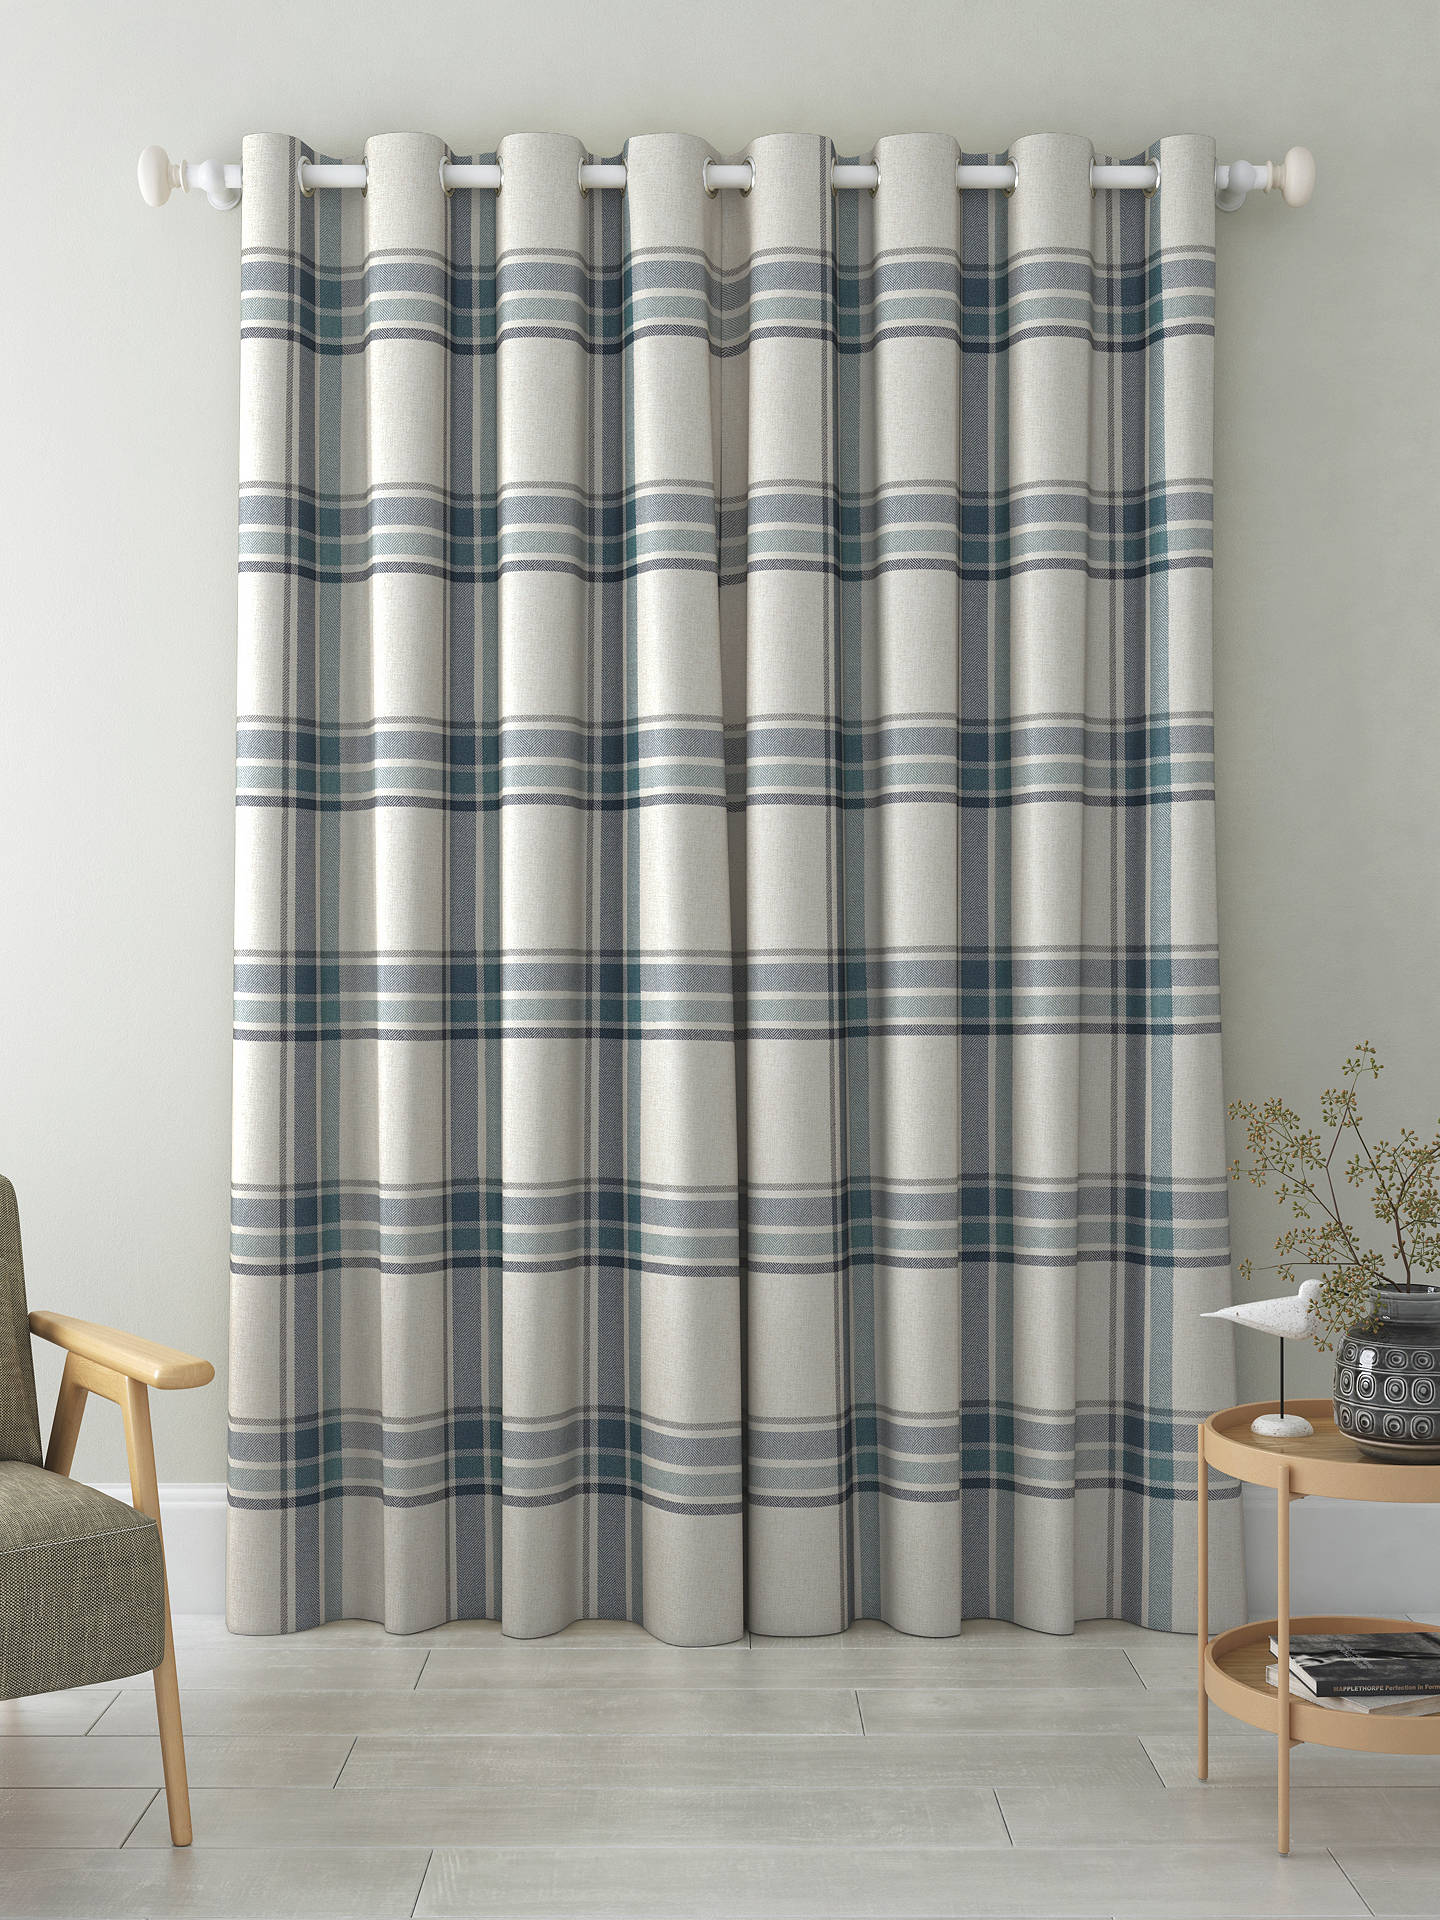 Buy John Lewis & Partners Afton Check Pair Lined Eyelet Curtains, Navy, W167 x Drop 137cm Online at johnlewis.com